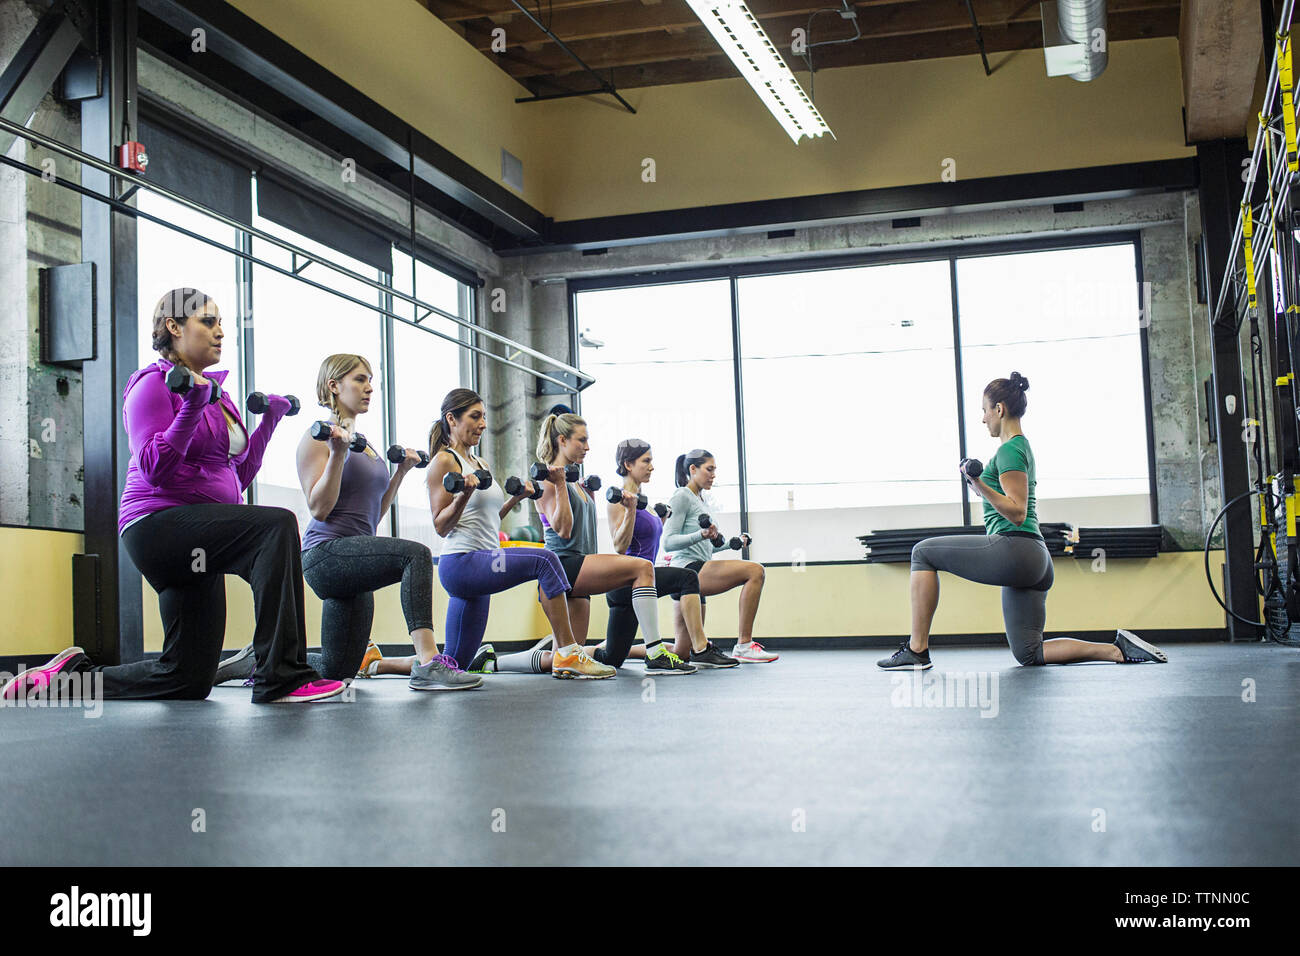 Instructor guiding women in lifting dumbbells at gym - Stock Image